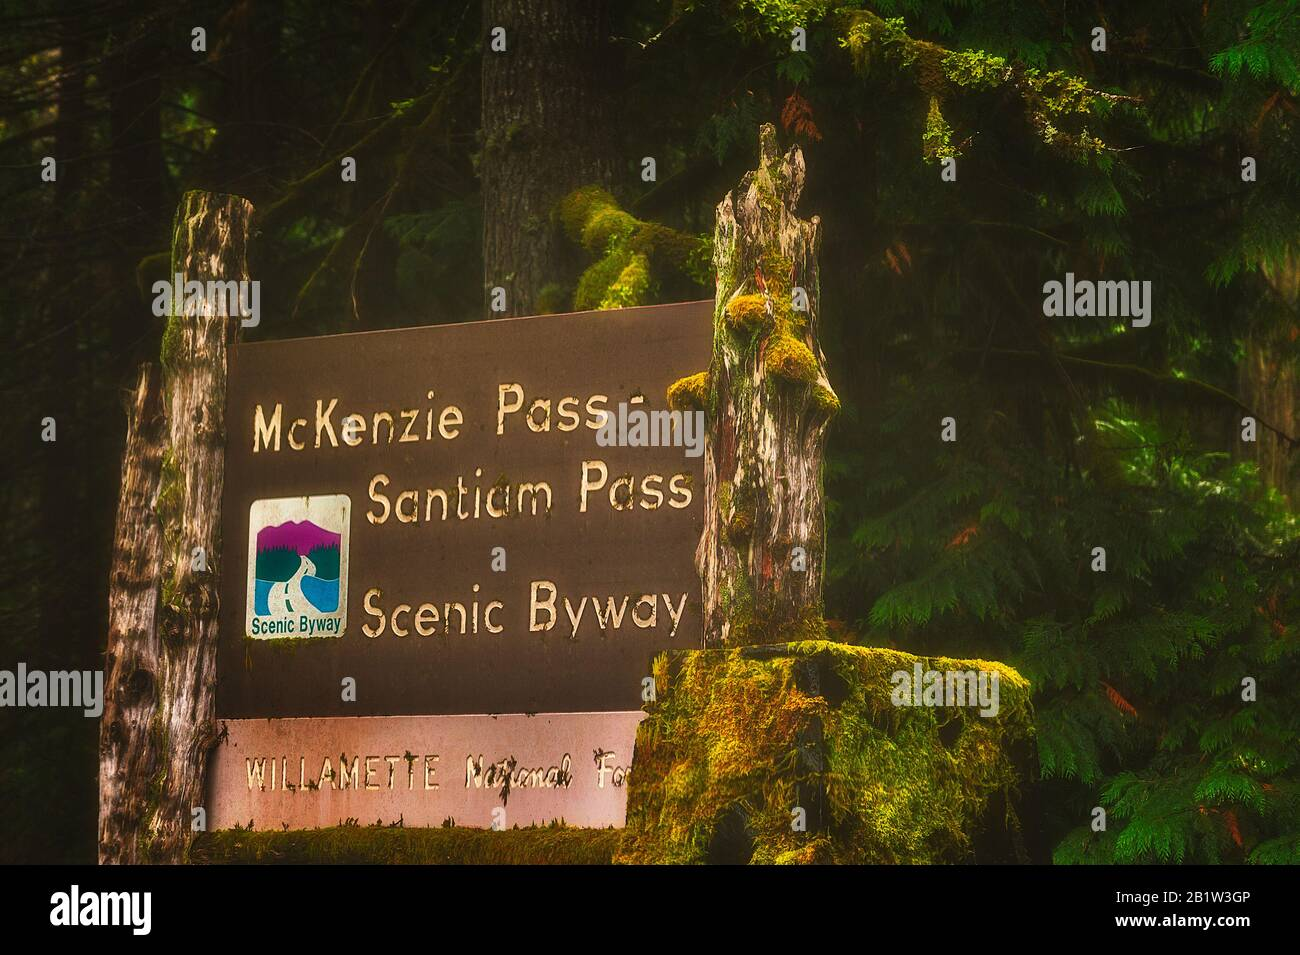 Sisters, Oregon - October 4, 2016:Closeup of Willamette National Forest sign of the McKenzie Pass-Santiam Pass Scenic Byway. Stock Photo